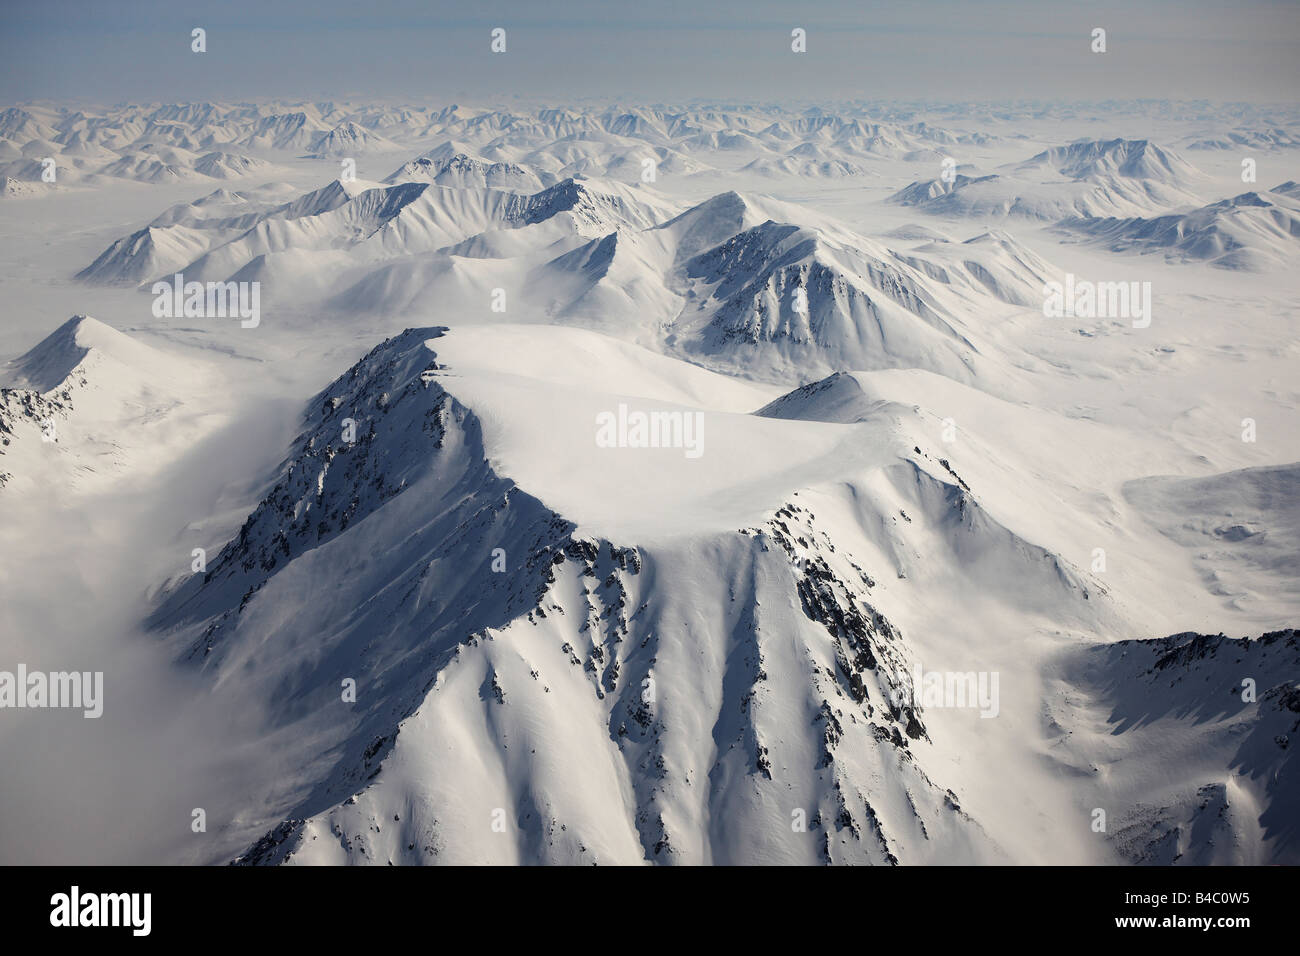 Aerial of snow covered mountains, between Egvekinot and Anadyr  Chukotka Siberia, Russia - Stock Image